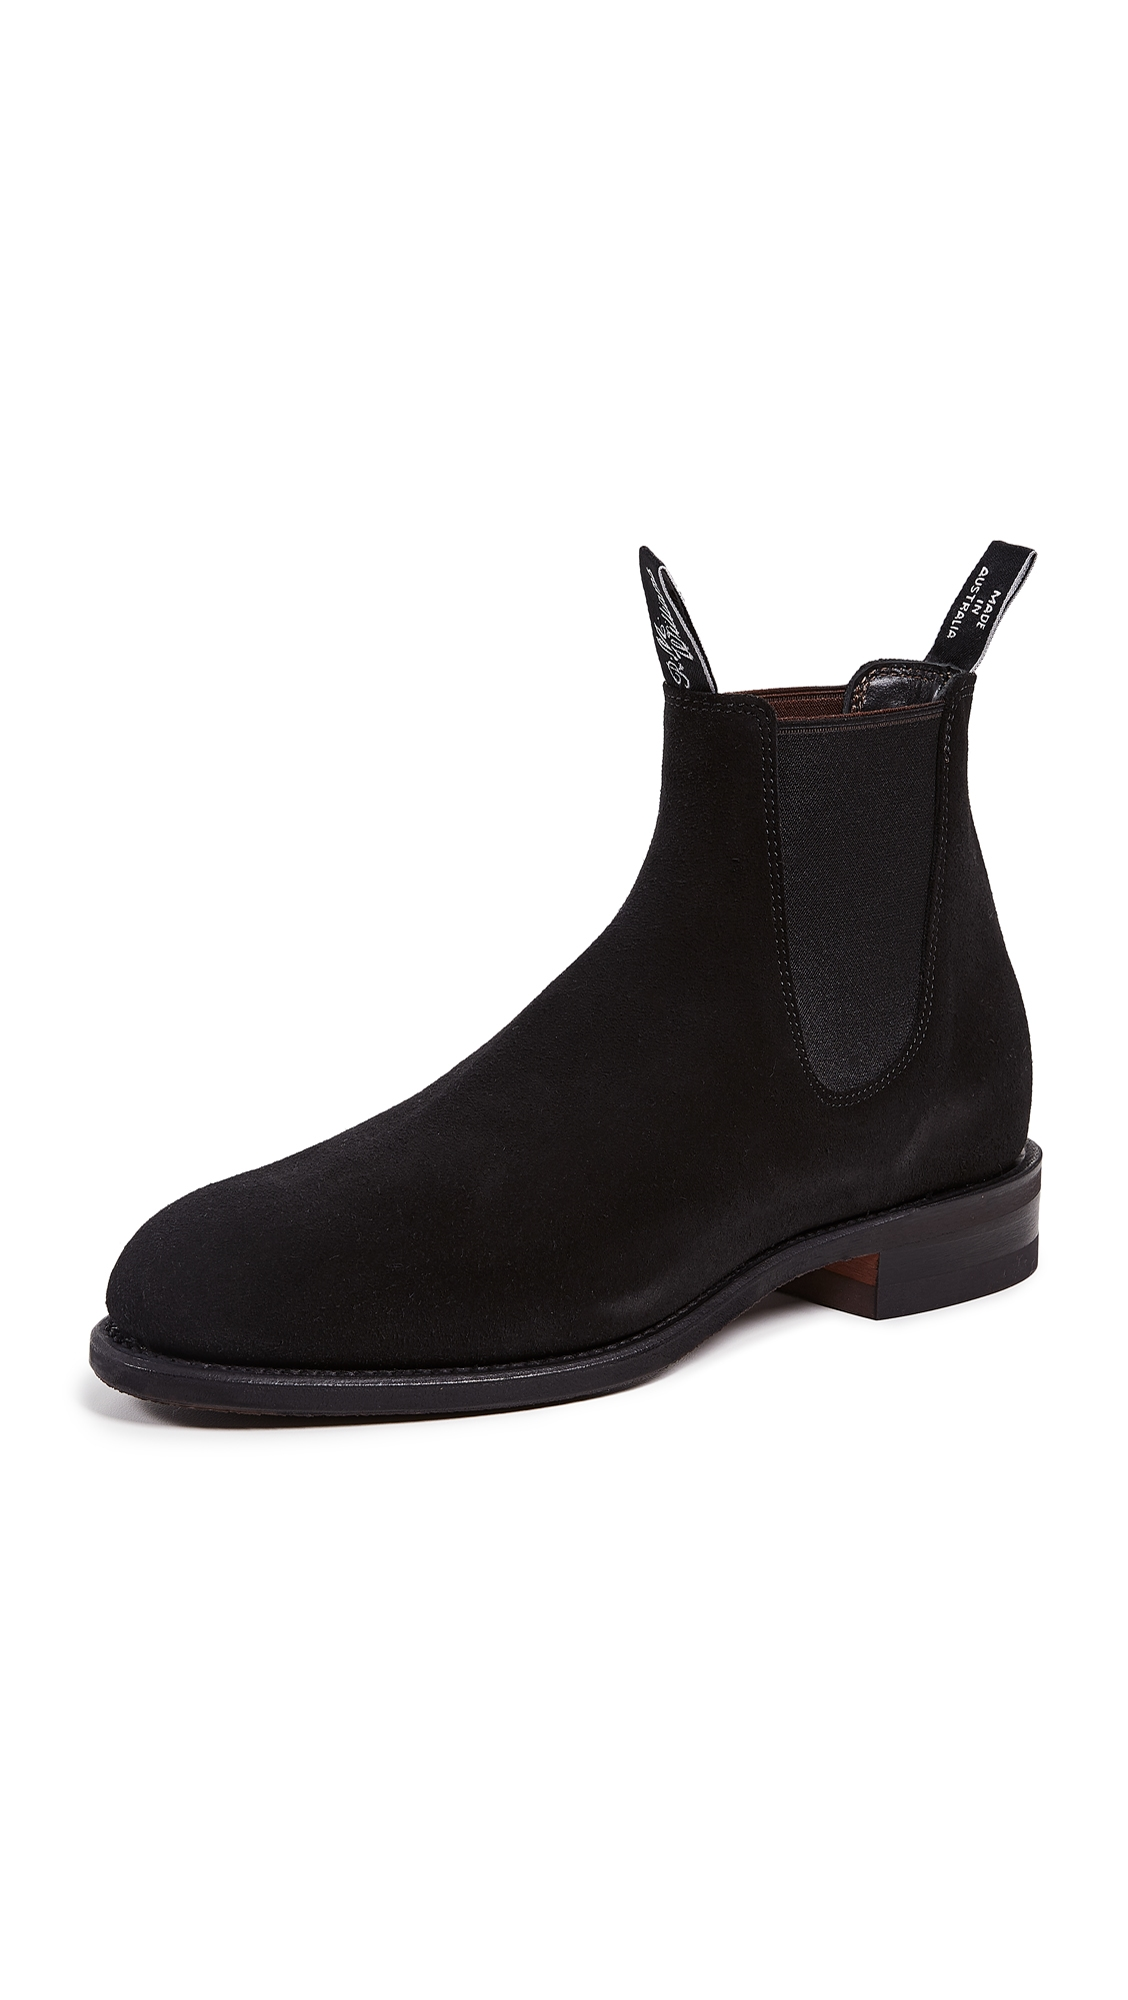 R.M.WILLIAMS Comfort Turnout Boots in Black